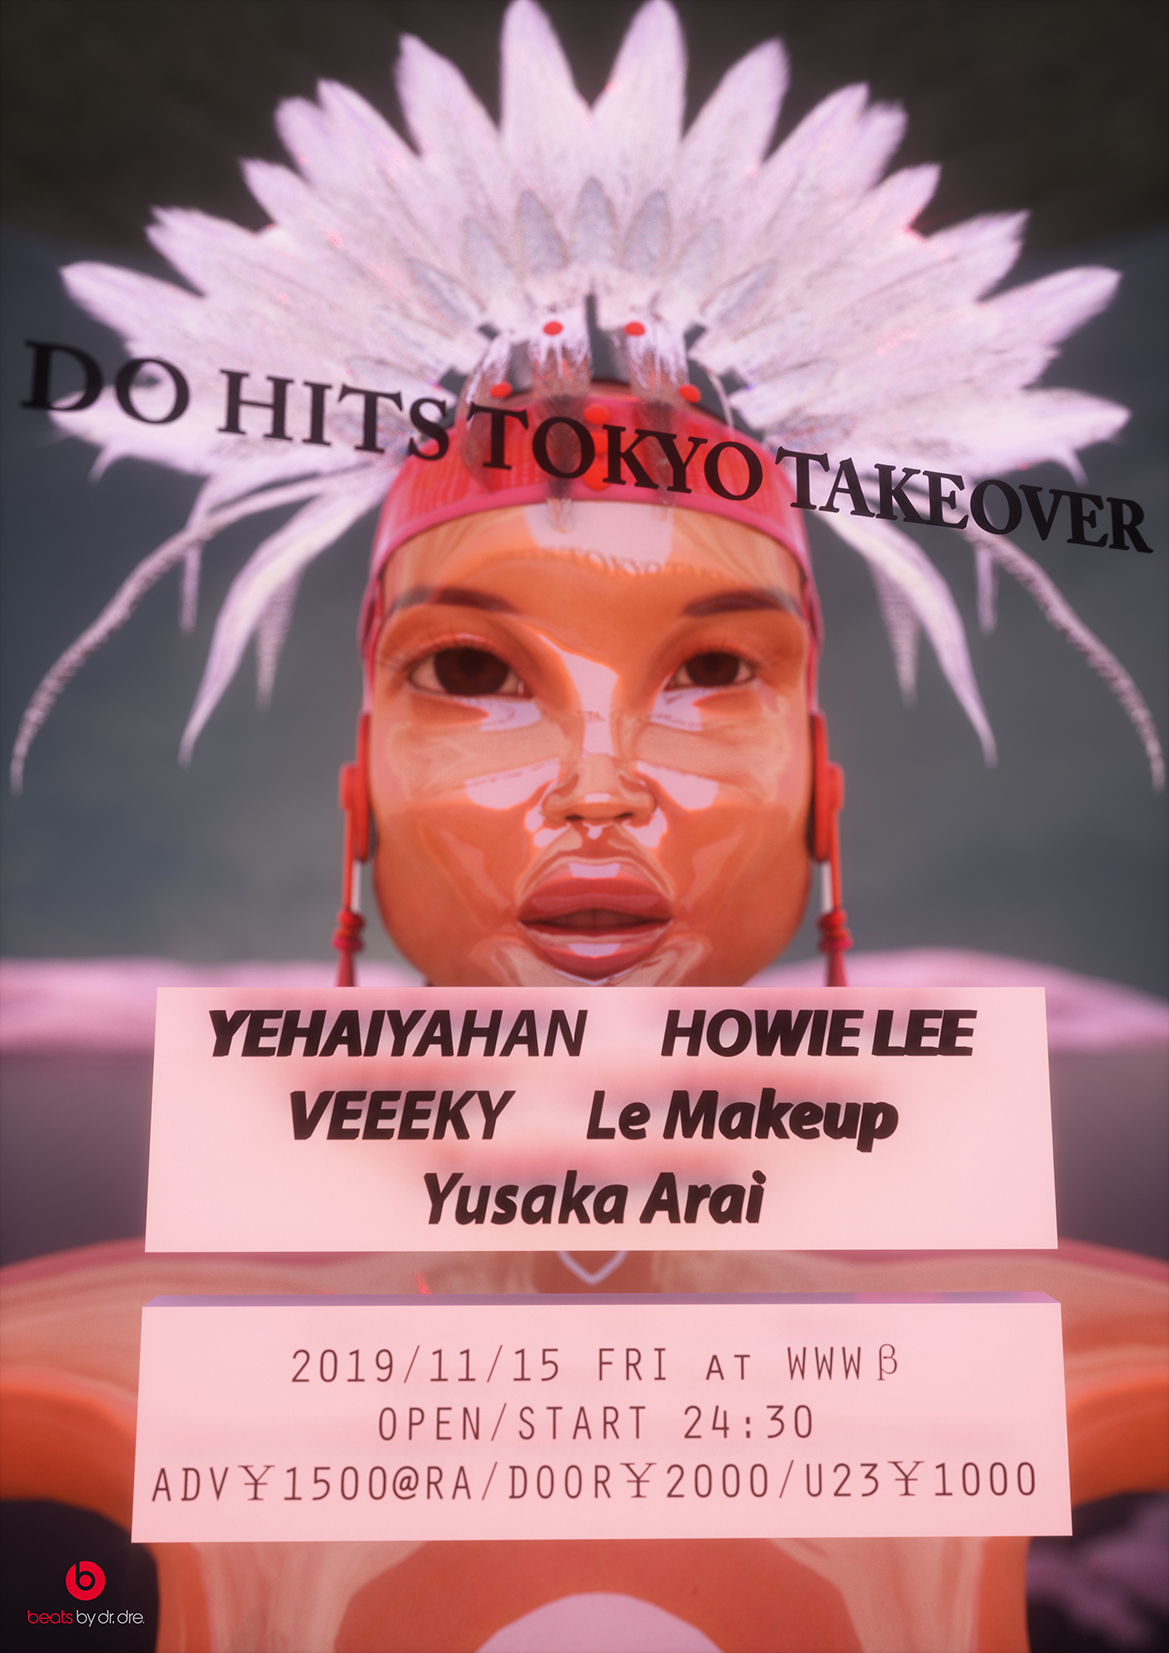 Do Hits Tokyo Takeover